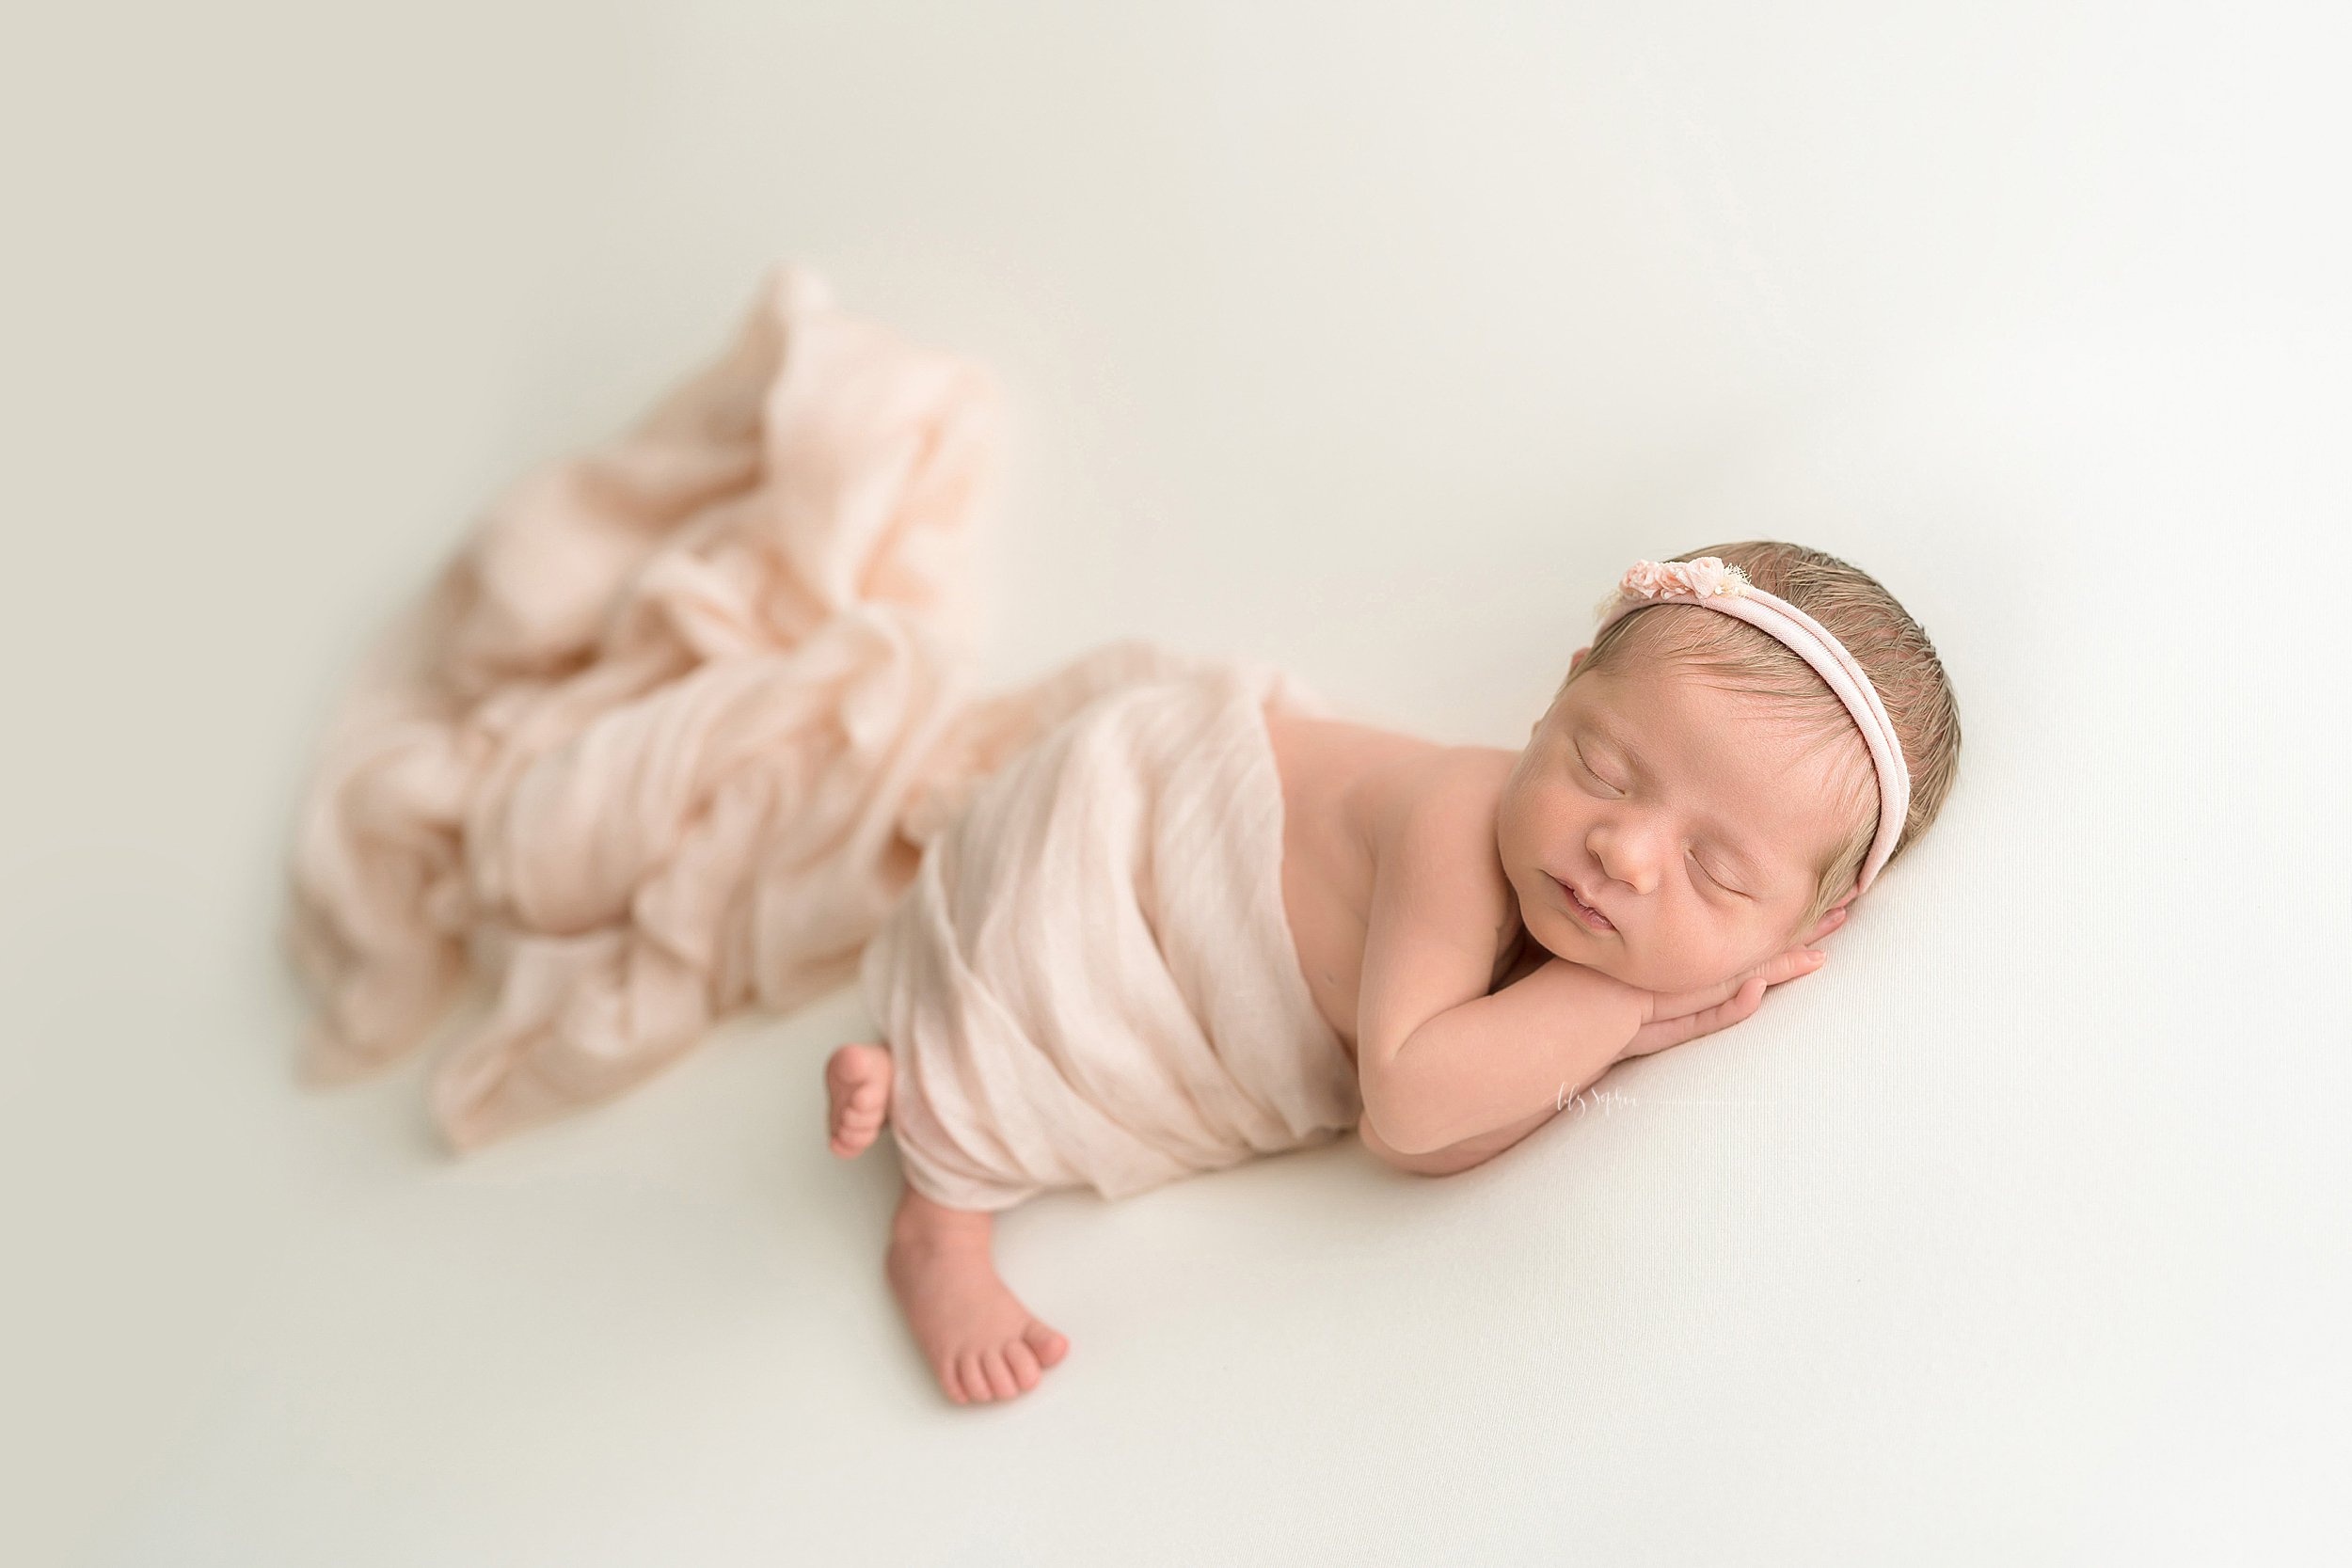 Newborn baby girl sleeping with her hands under the left side of her face. She is wrapped in a pastel pink linen swaddle and is wearing a pastel pink headband with a delicate bow on top of her head.  Her tiny feet are sticking out of the swaddle.